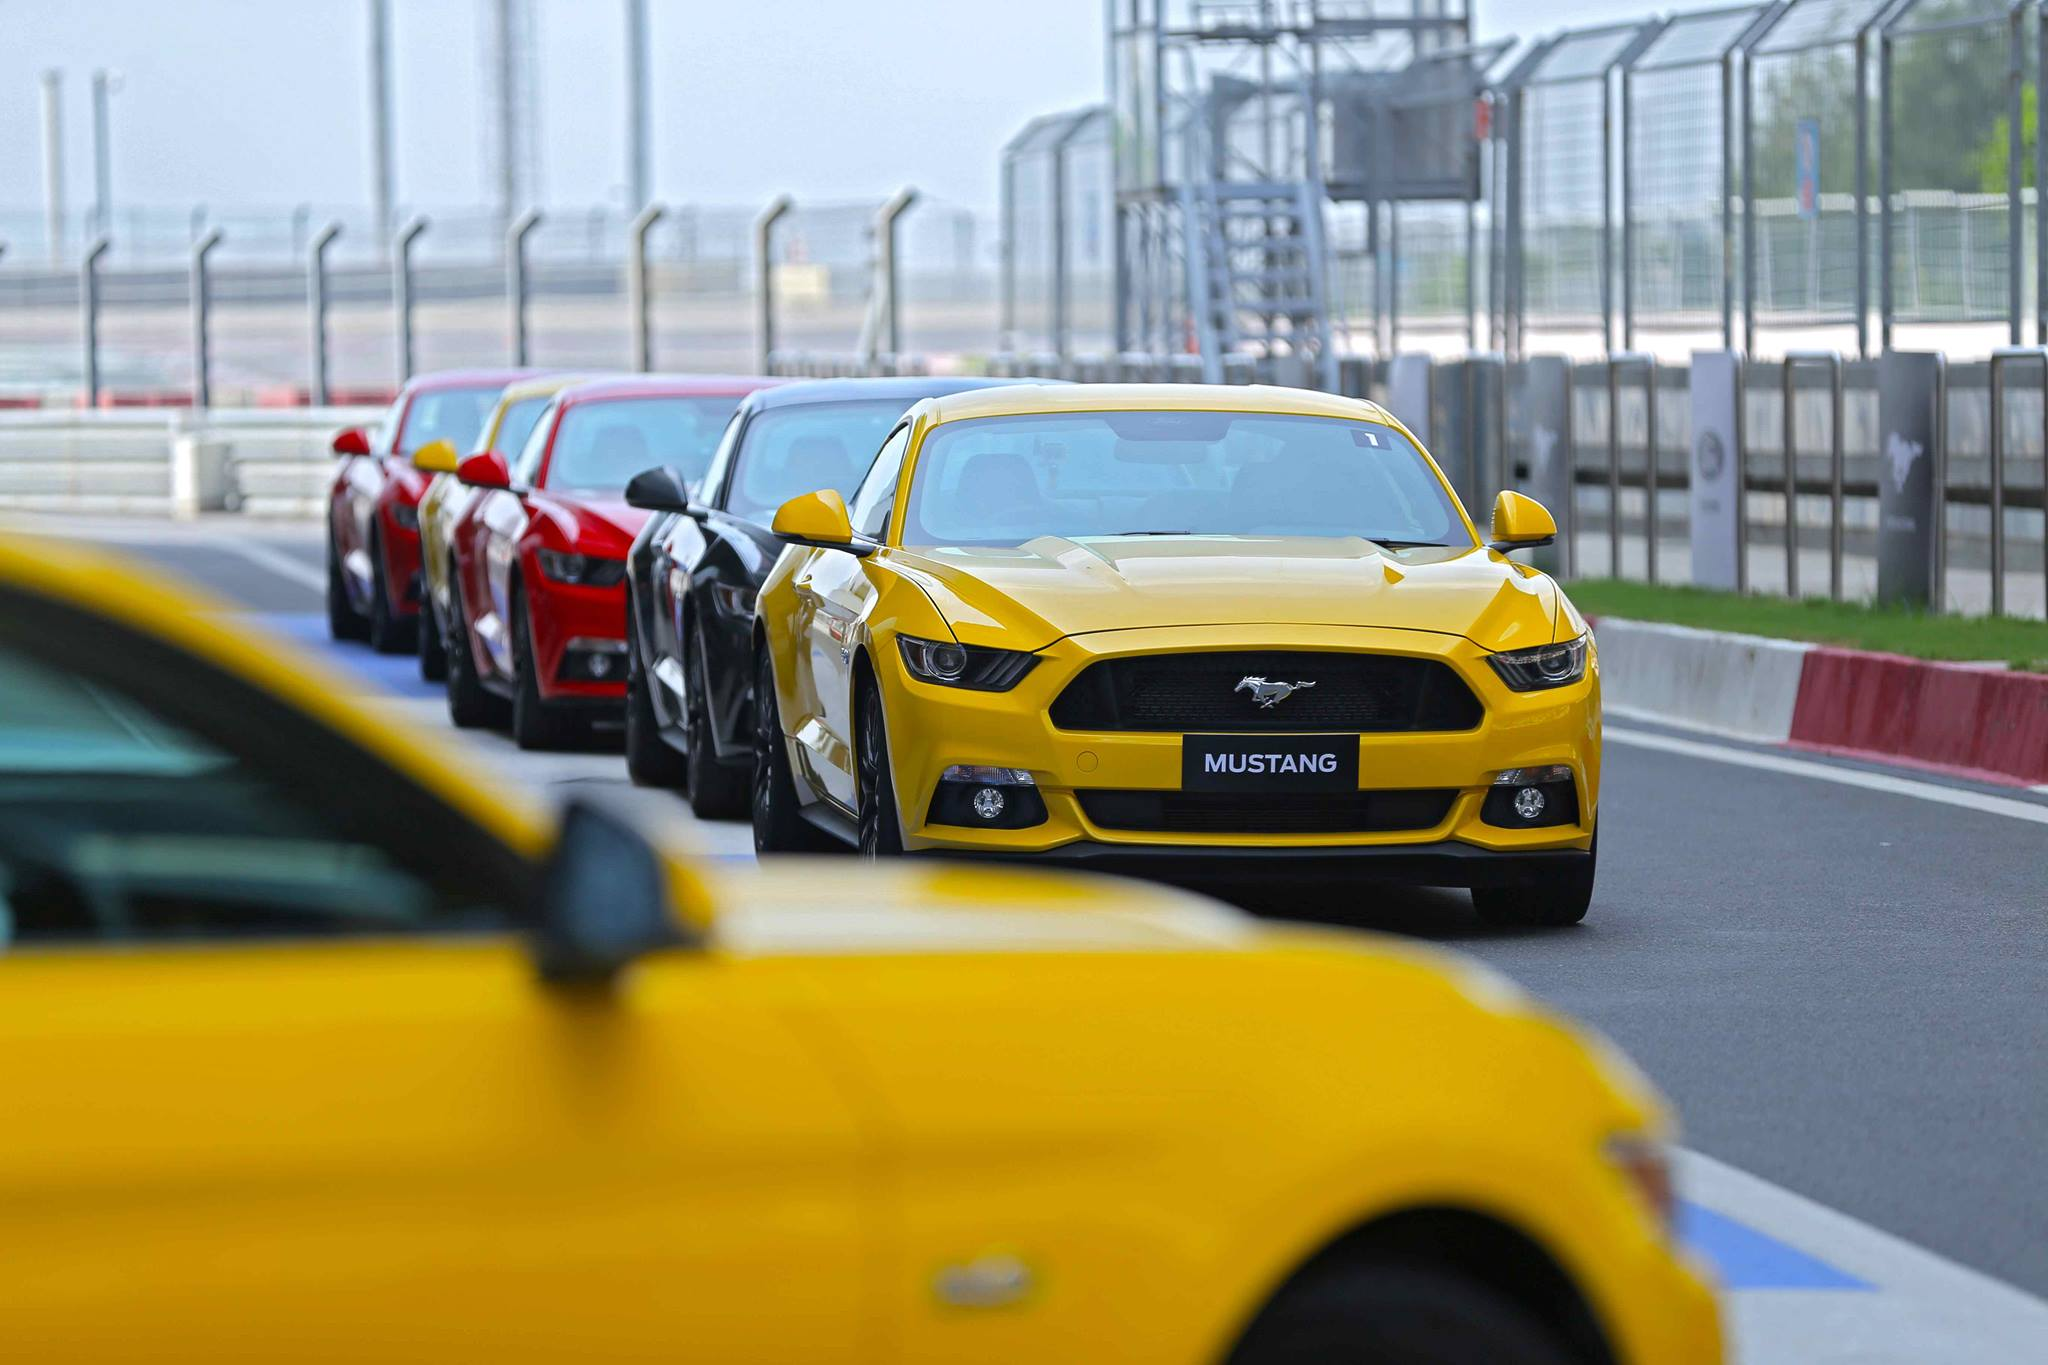 Ford mustang gt india pictures images photos snaps video 003